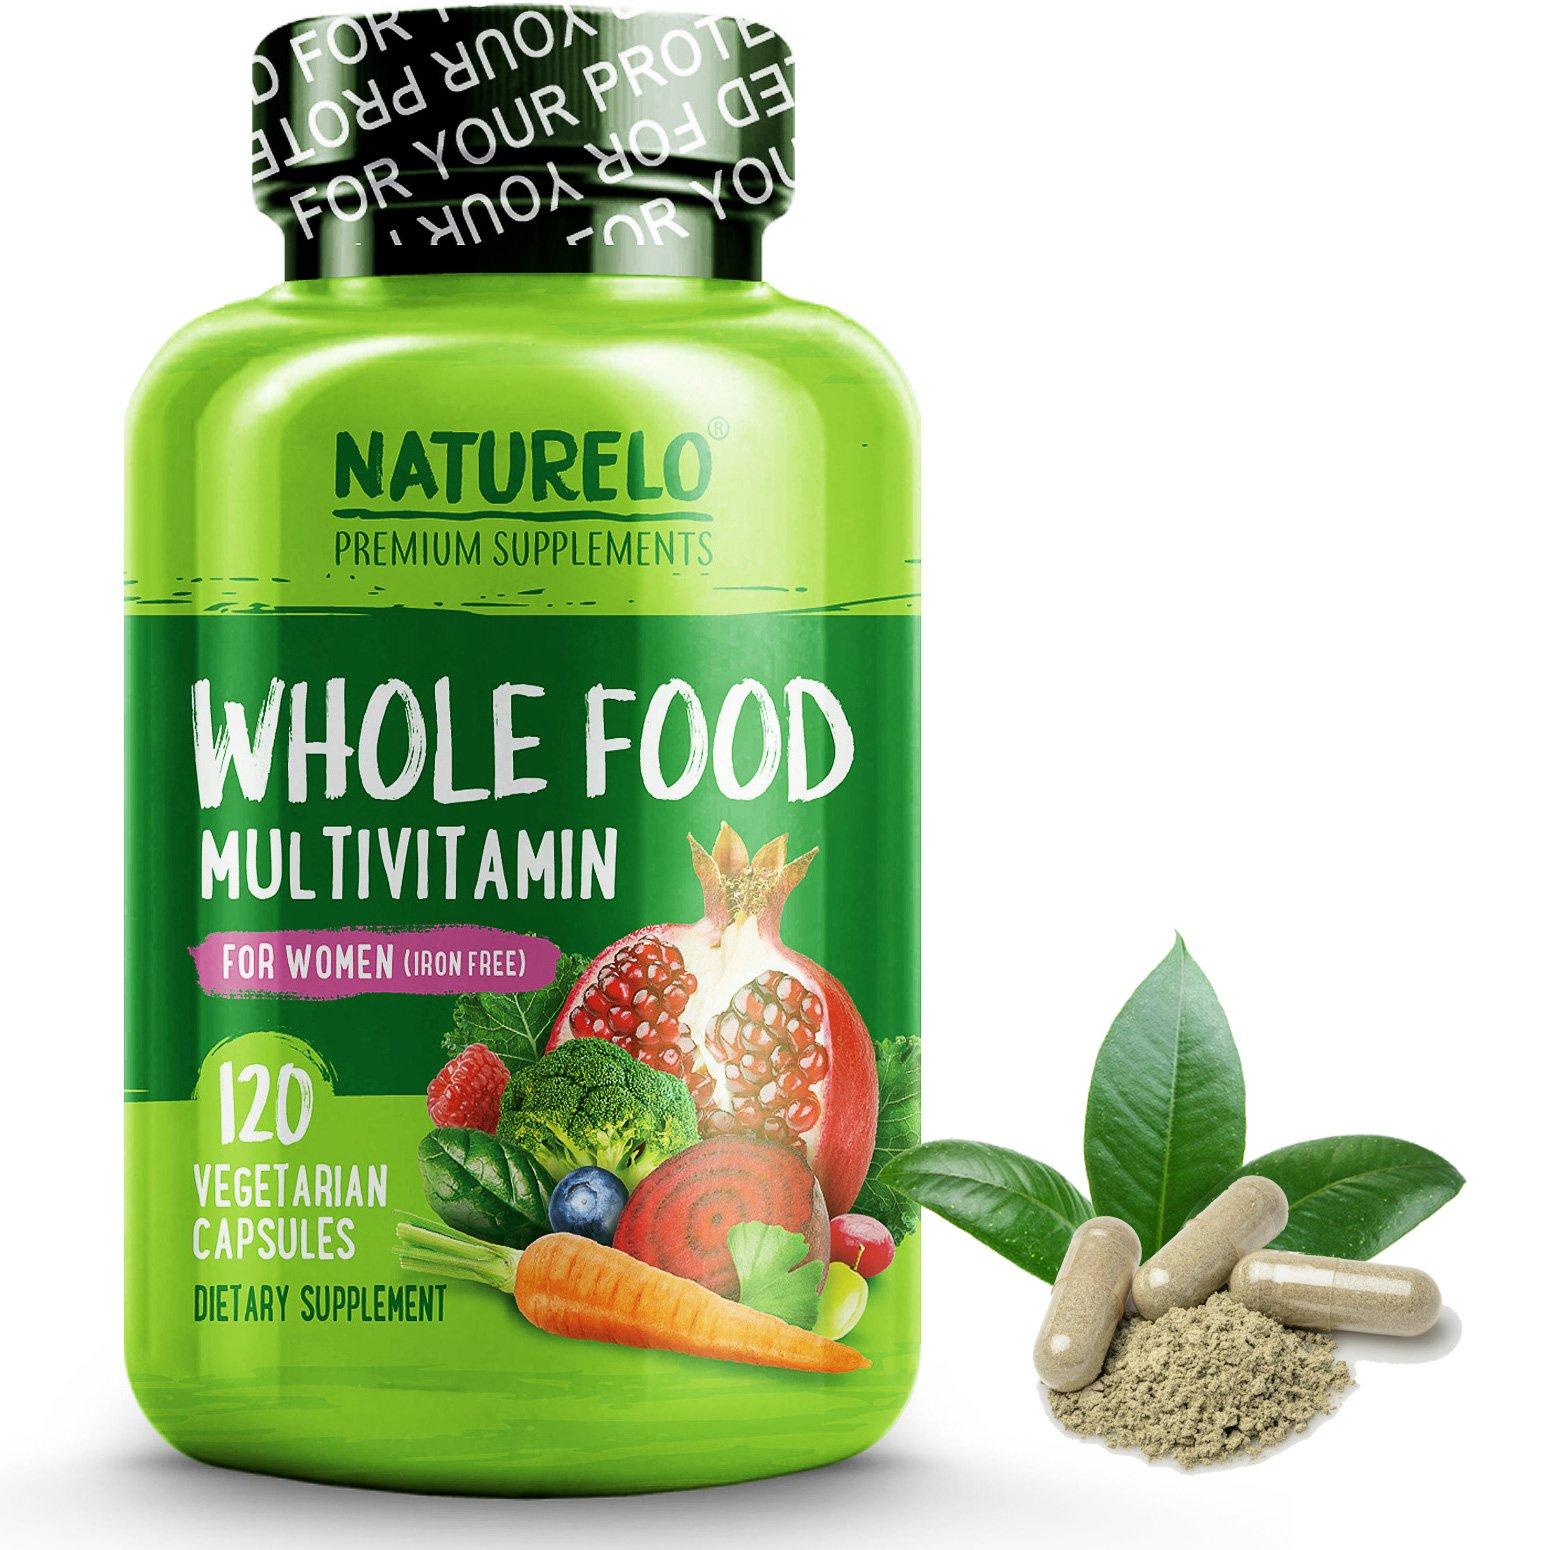 NATURELO Whole Food Multivitamin for Women 50+ (Iron Free) Natural Vitamins, Minerals, Raw Organic Extracts - Best for Post Menopausal Women Over 50 - Vegan - No GMO - 120 Capsules